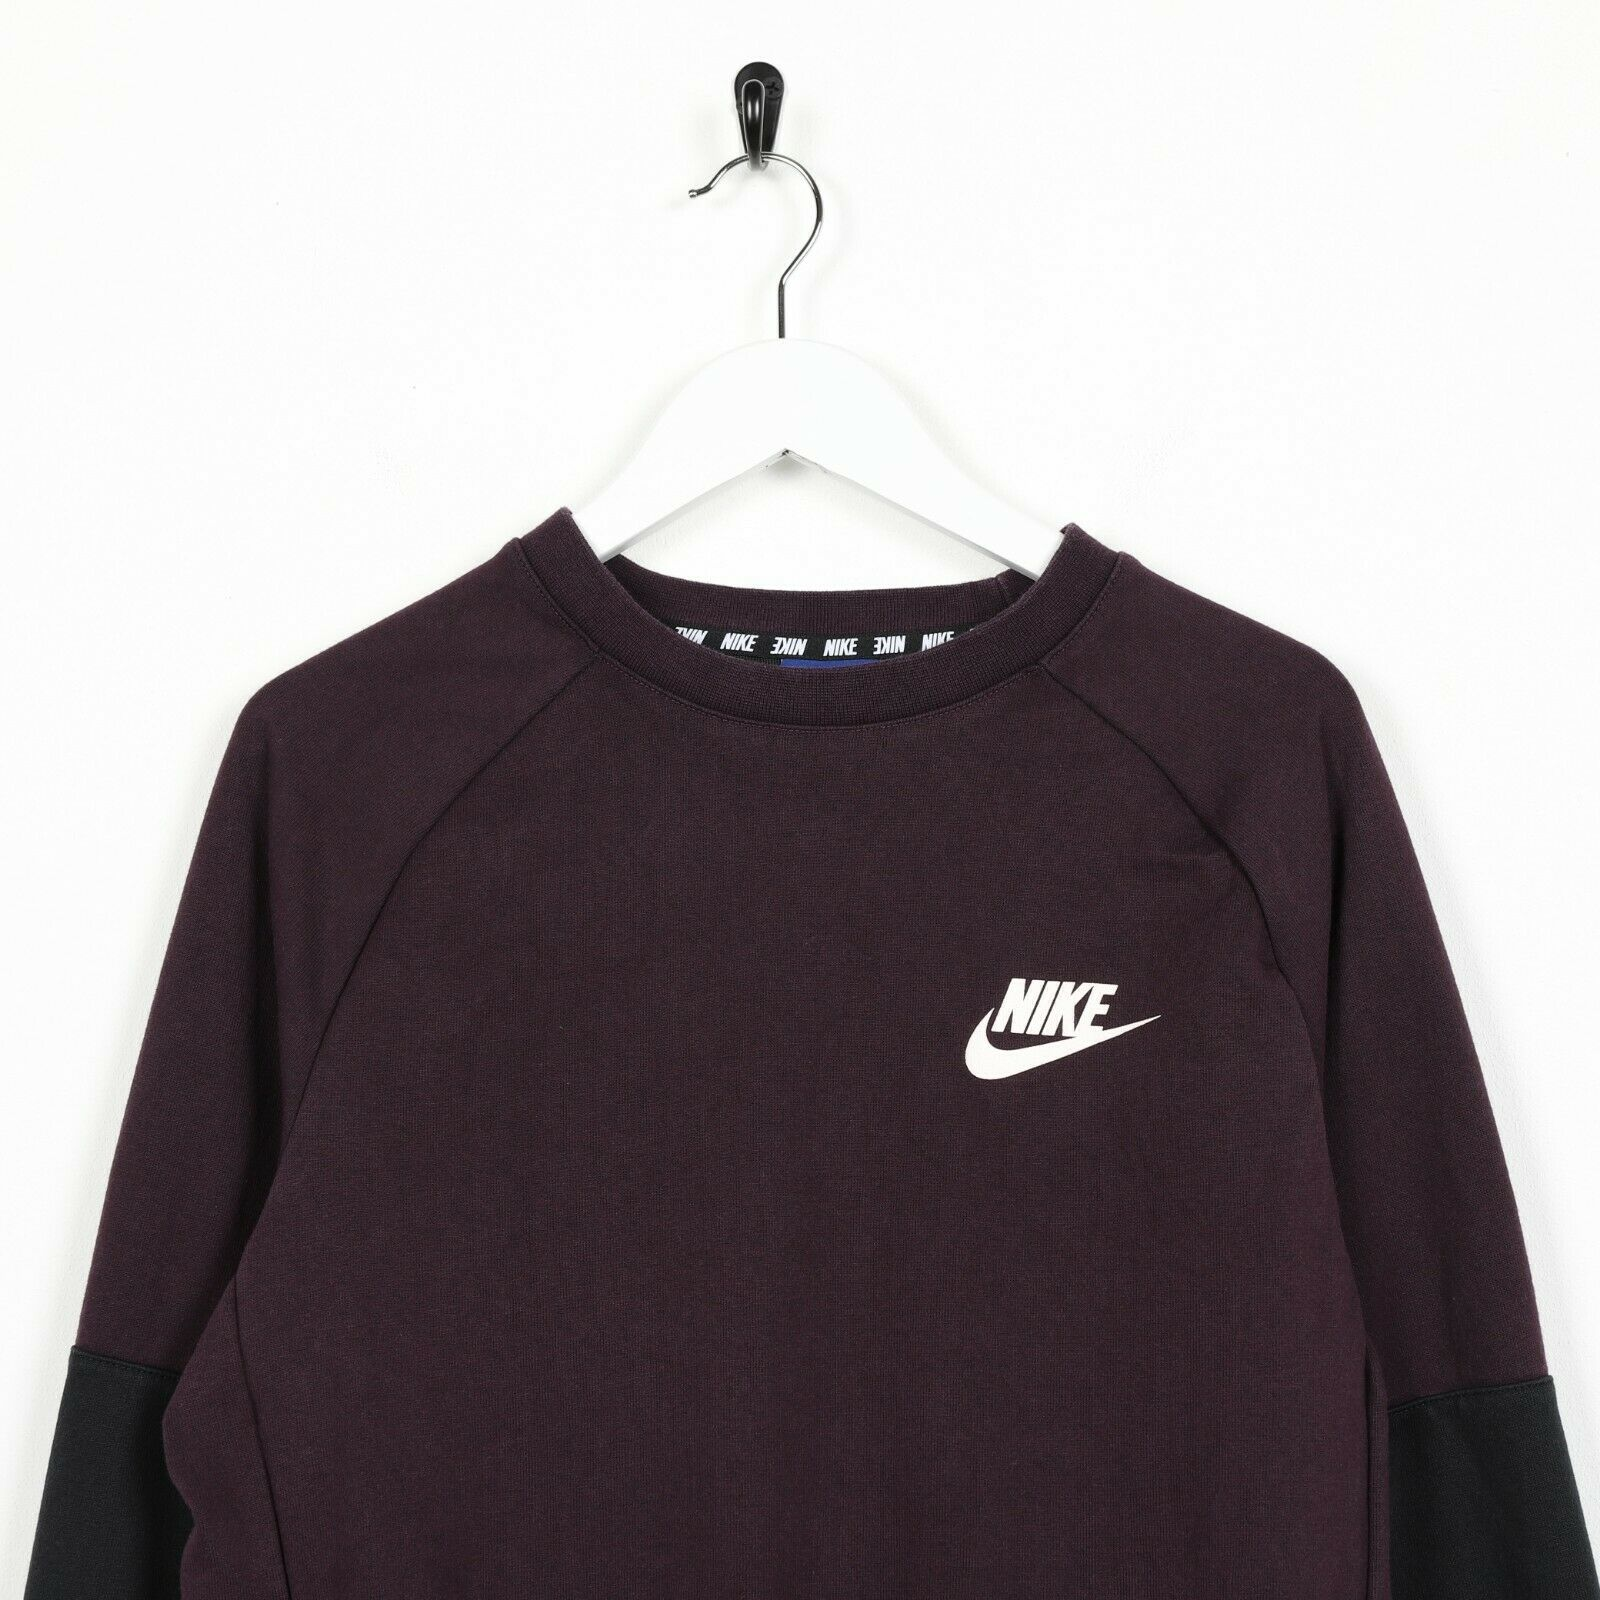 Vintage NIKE Spell Out Logo Sweatshirt Jumper Dark Purple Small S